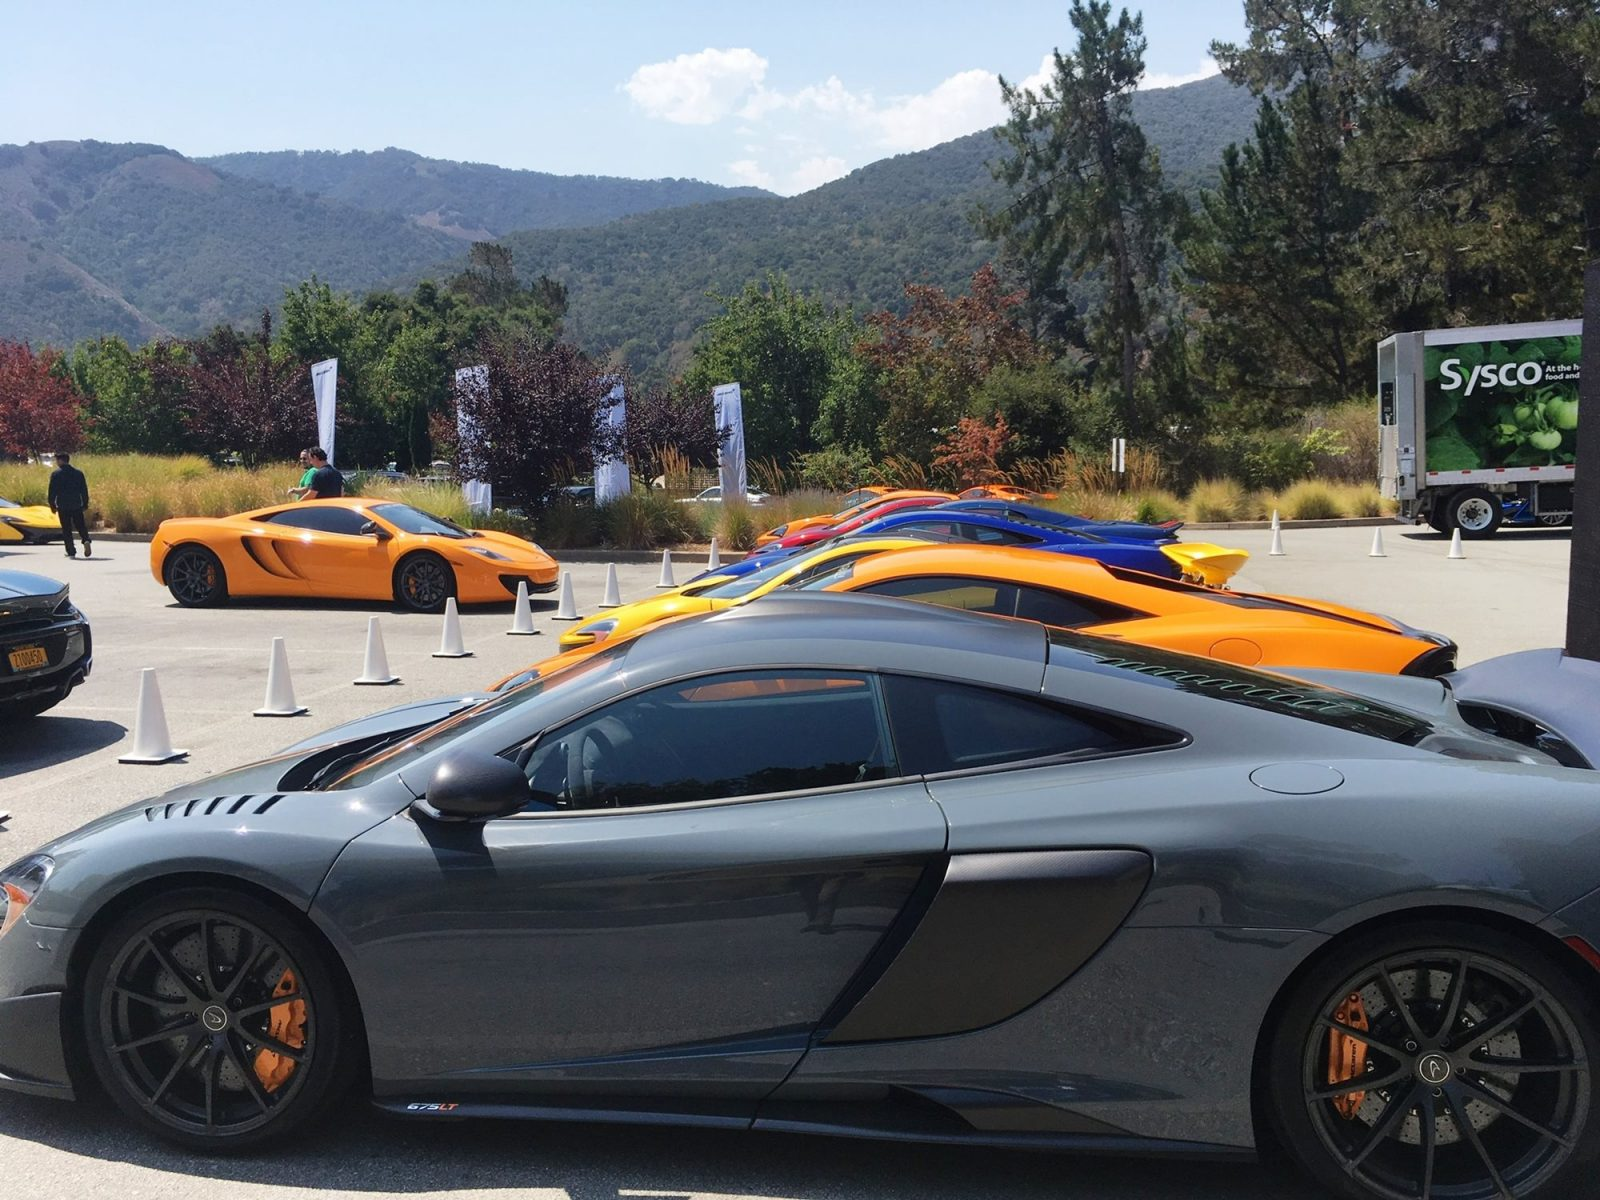 MCLAREN MADNESS - 2017 Pebble Beach VIP Villa 40